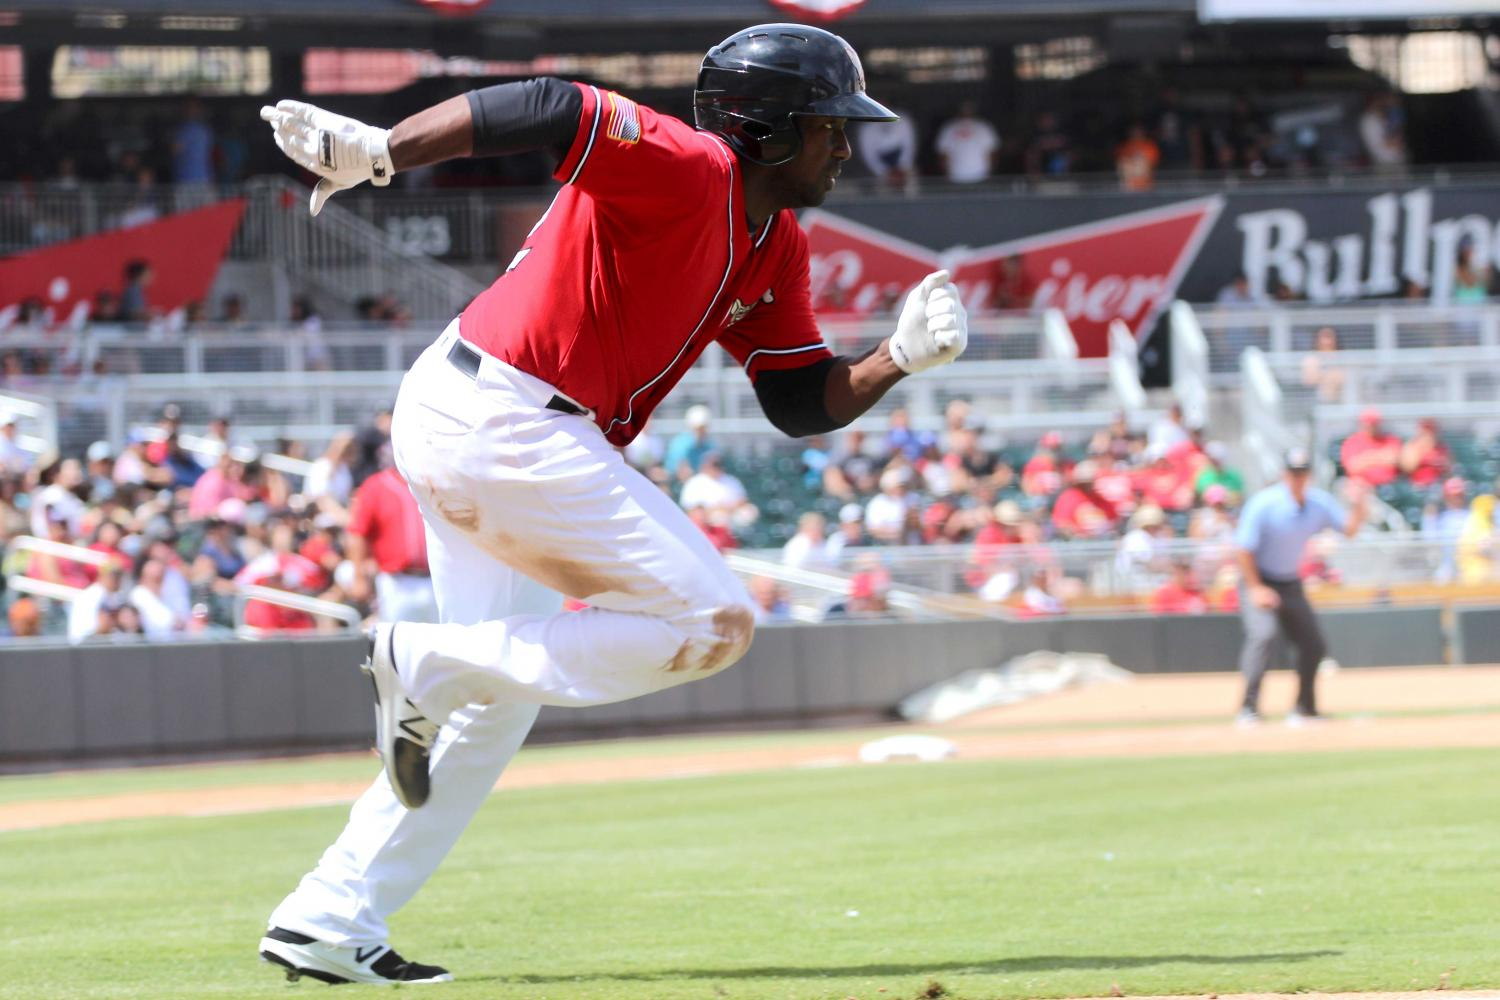 The El Paso Chihuahuas have vaulted into second place due in large part to their hitting. Prior to the season, hitting was thought to be a weak point for a team with several star pitching prospects.